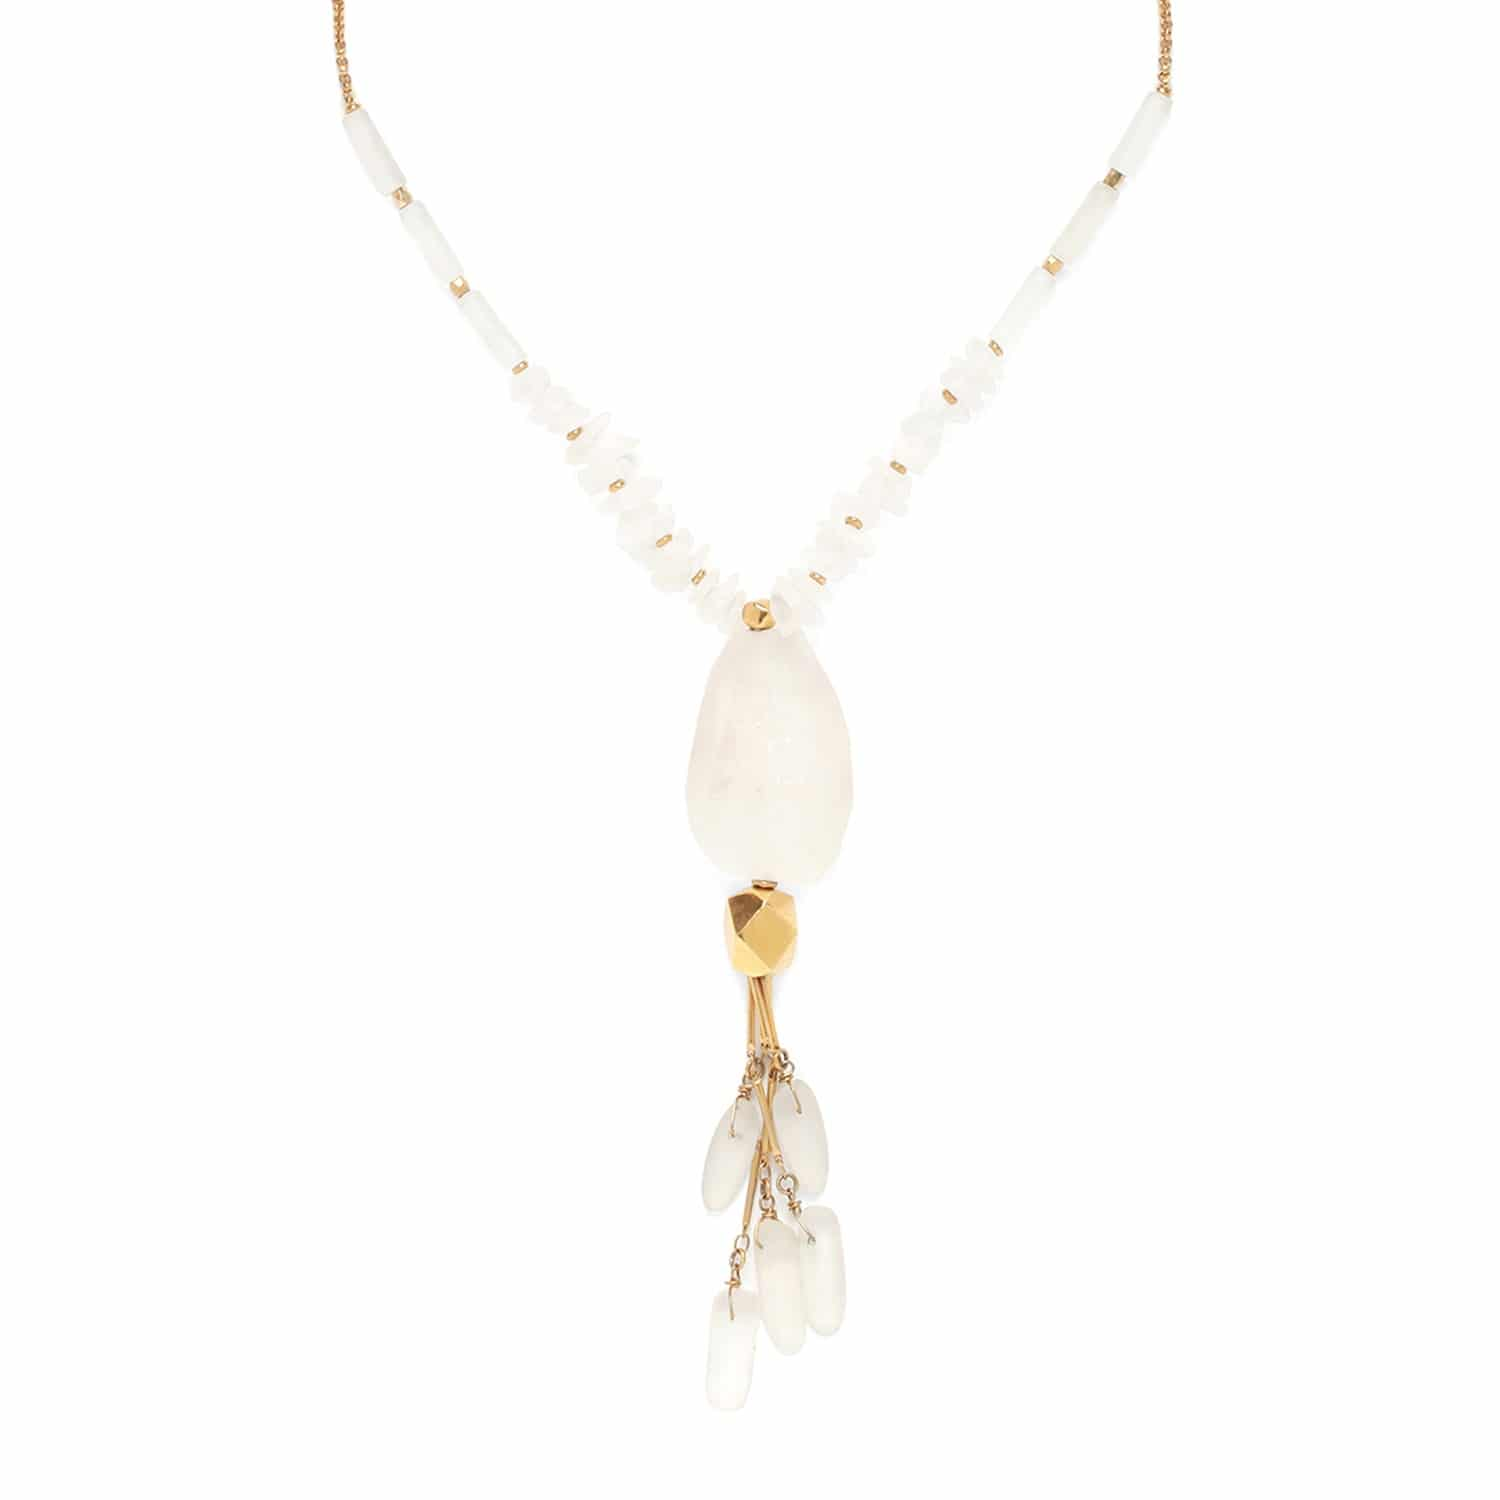 OMBRE ET LUMIERE rock crystal necklace with pendant